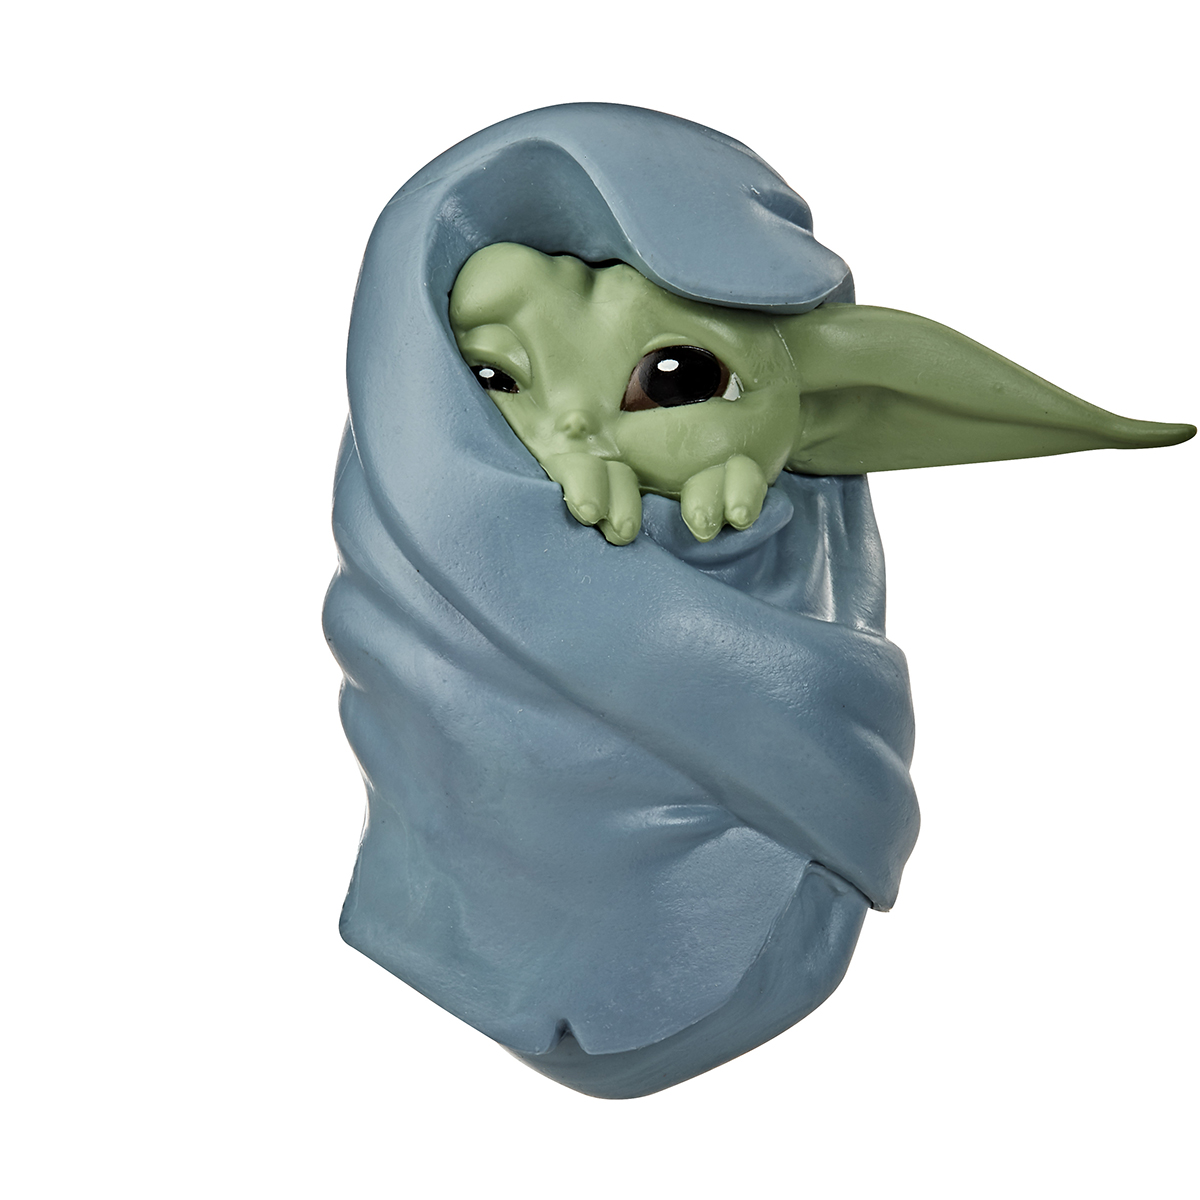 Figurina Star Wars Baby Yoda, Blanket Wrapped, F12215l00, 6 cm